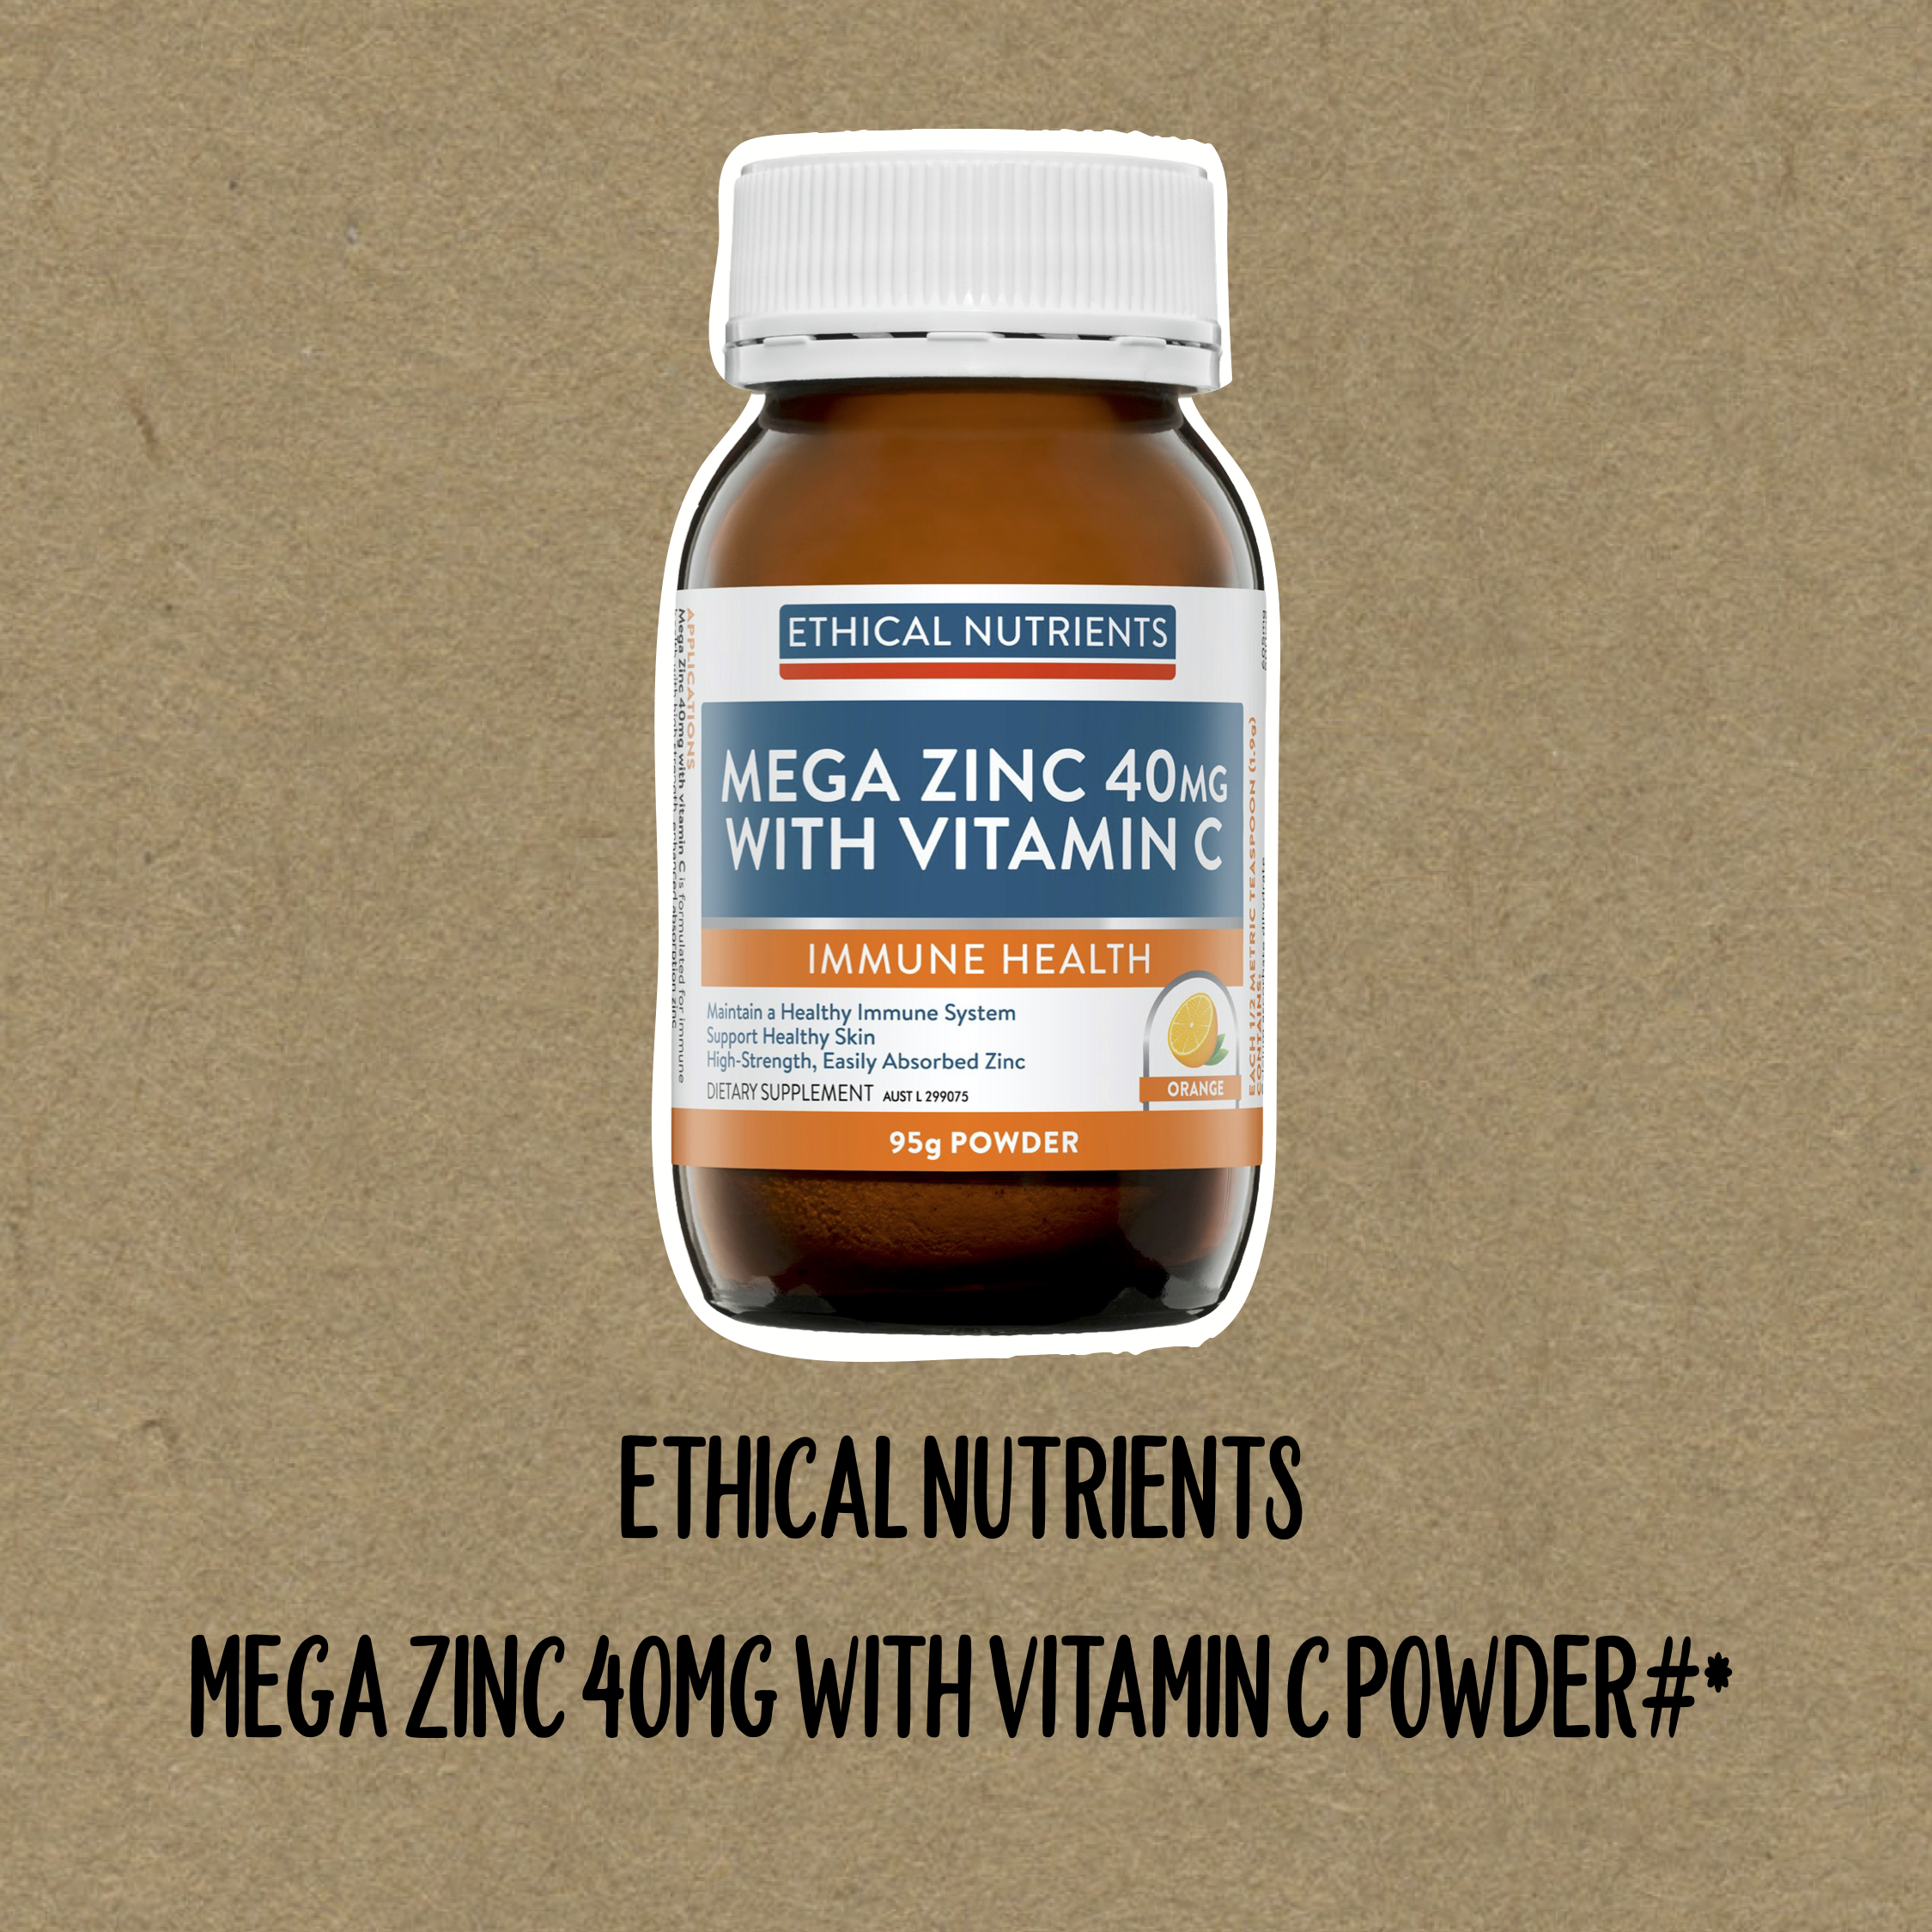 Naturopath Recommended Ethical Nutrients Mega Zinc